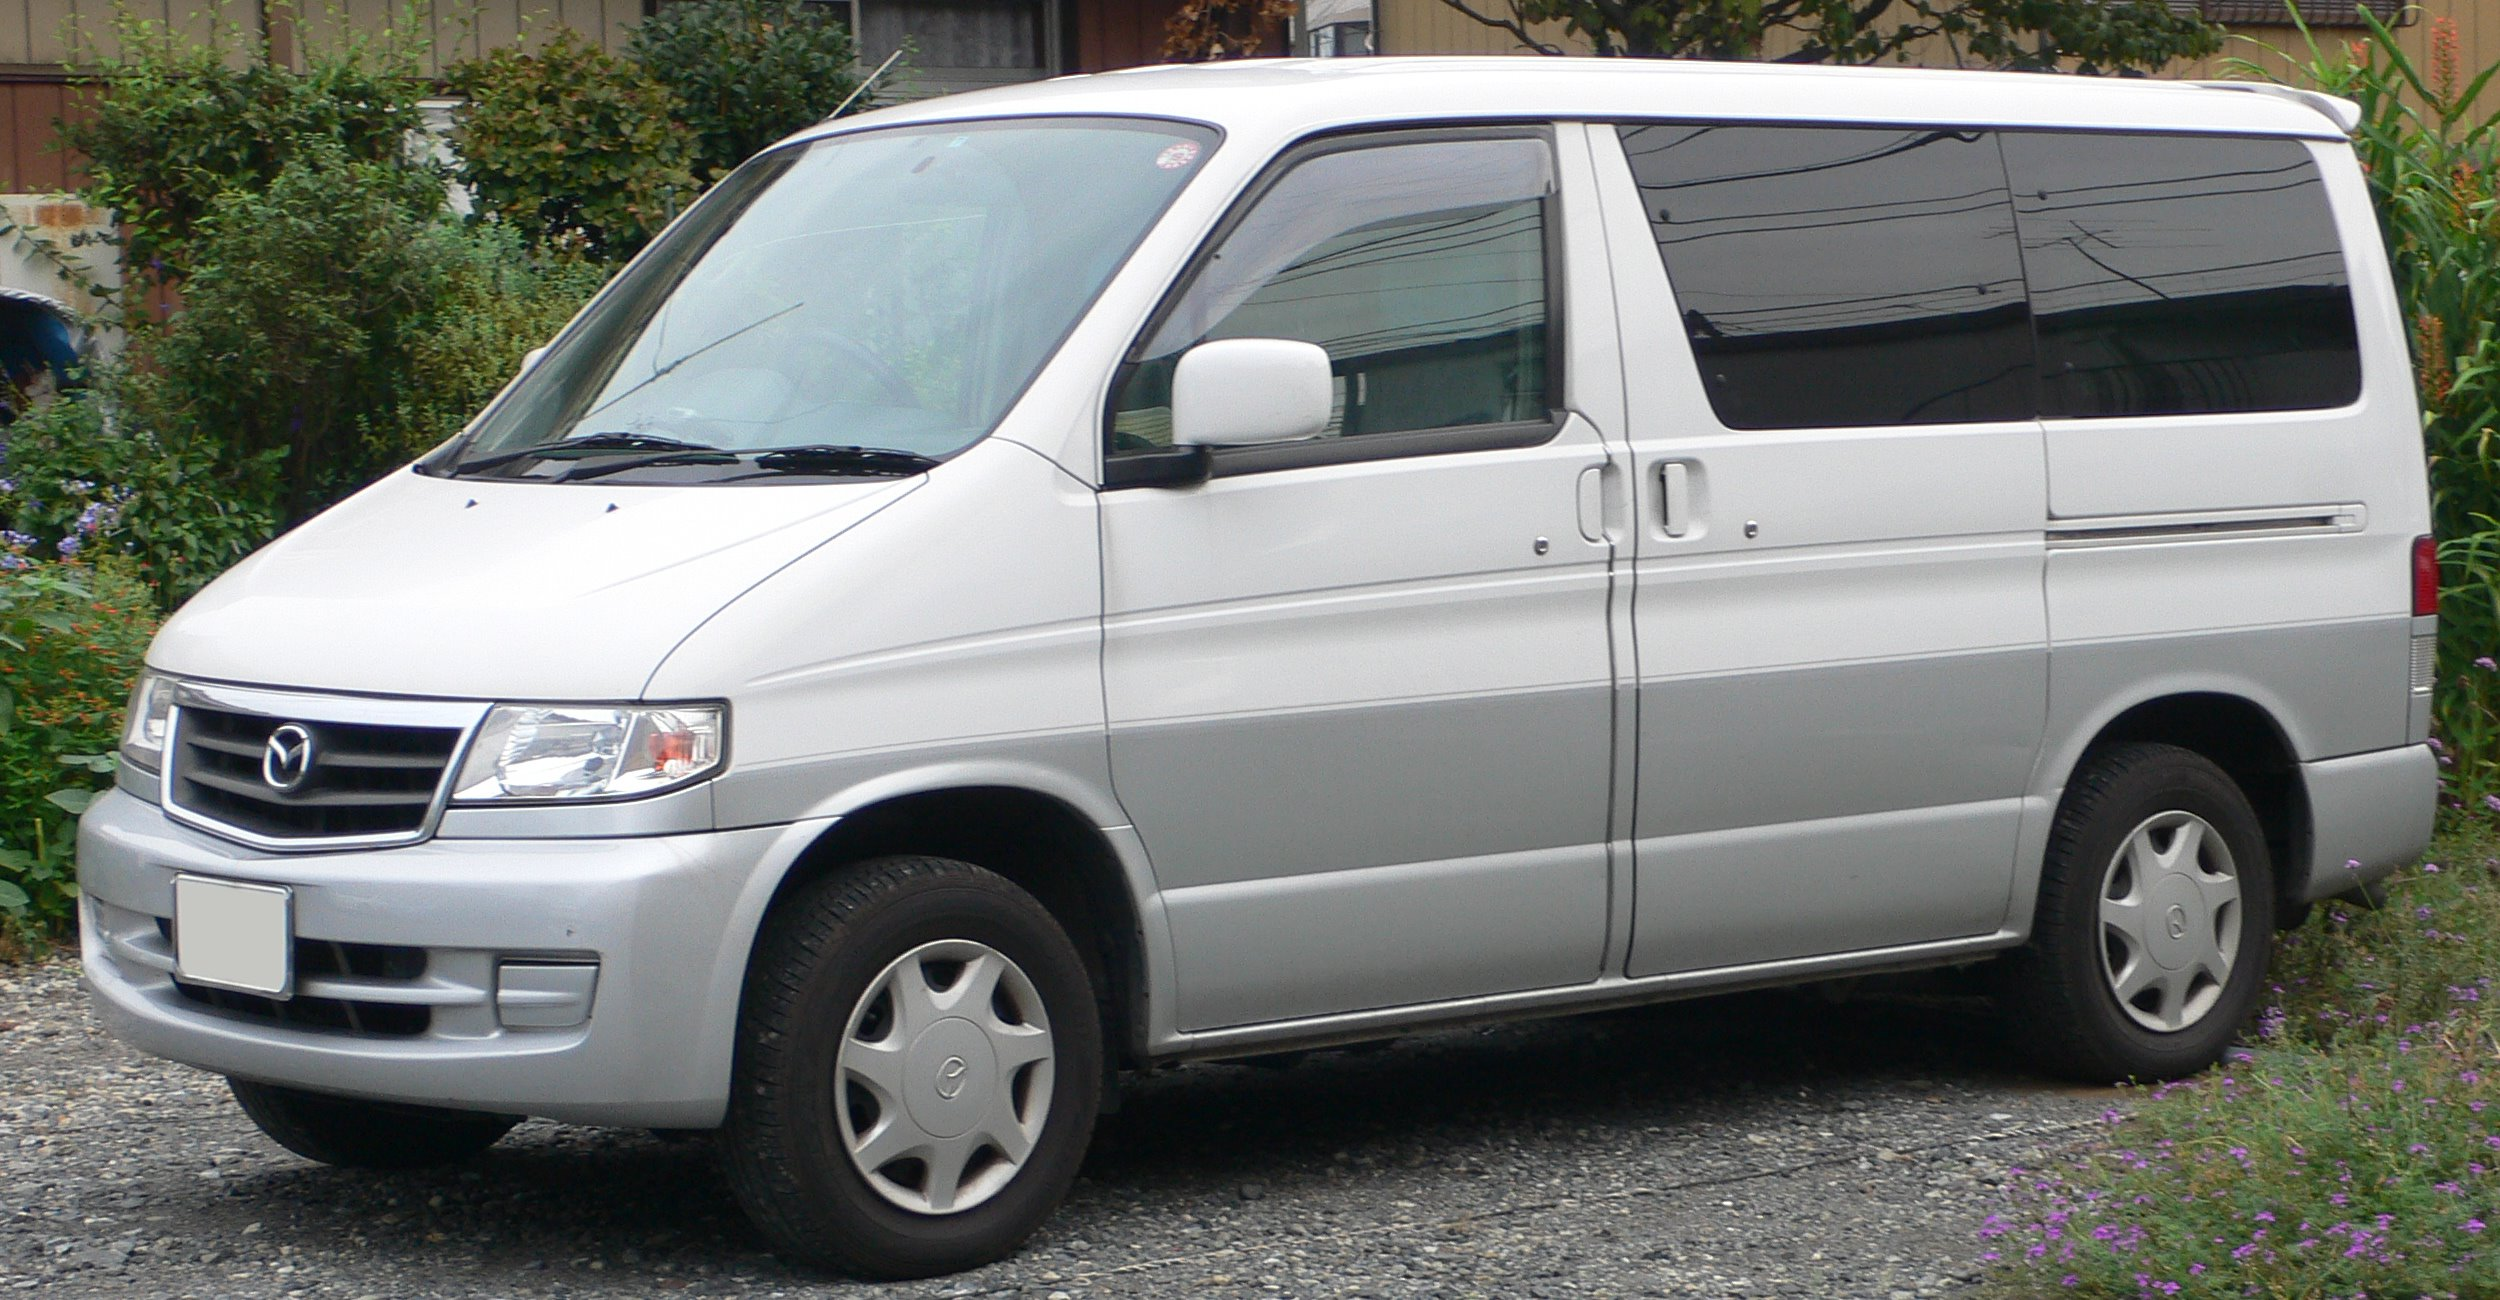 Mazda Bongo 1999 photo - 3